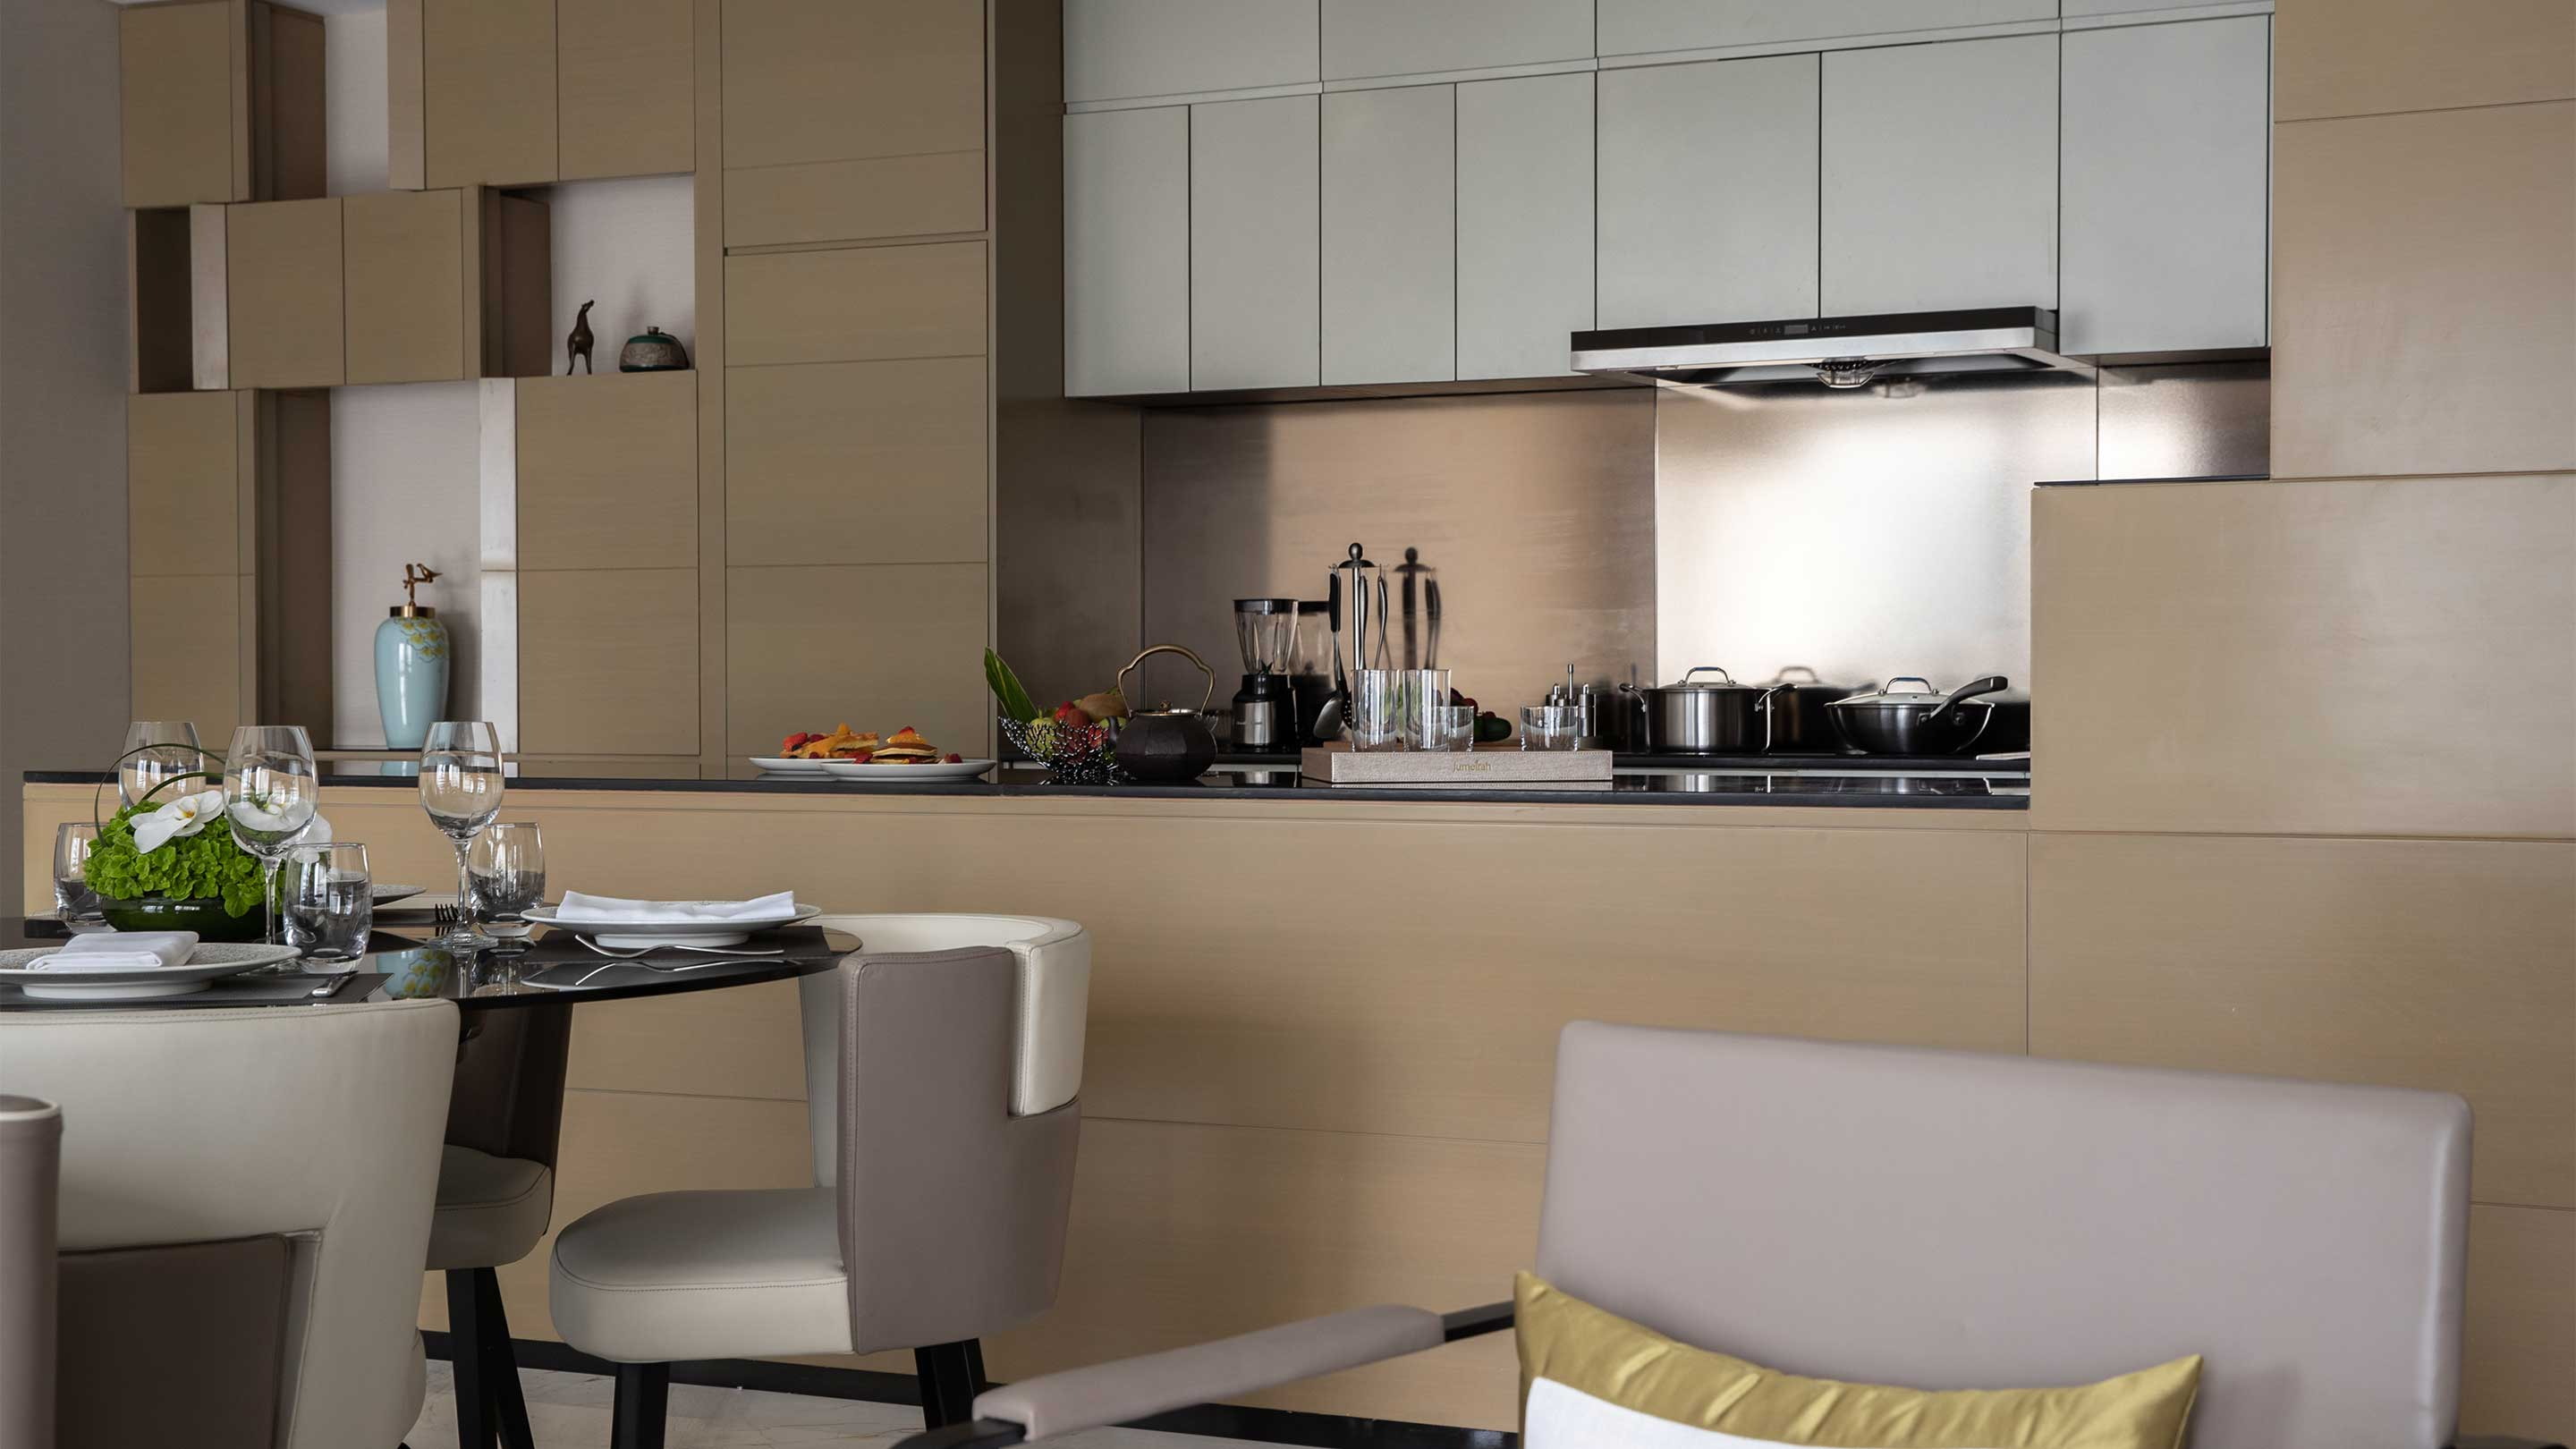 16-9 JUMEIRAH LIVING GUANGZHOU Contemporary 3 bed room suite dining room open kitchen